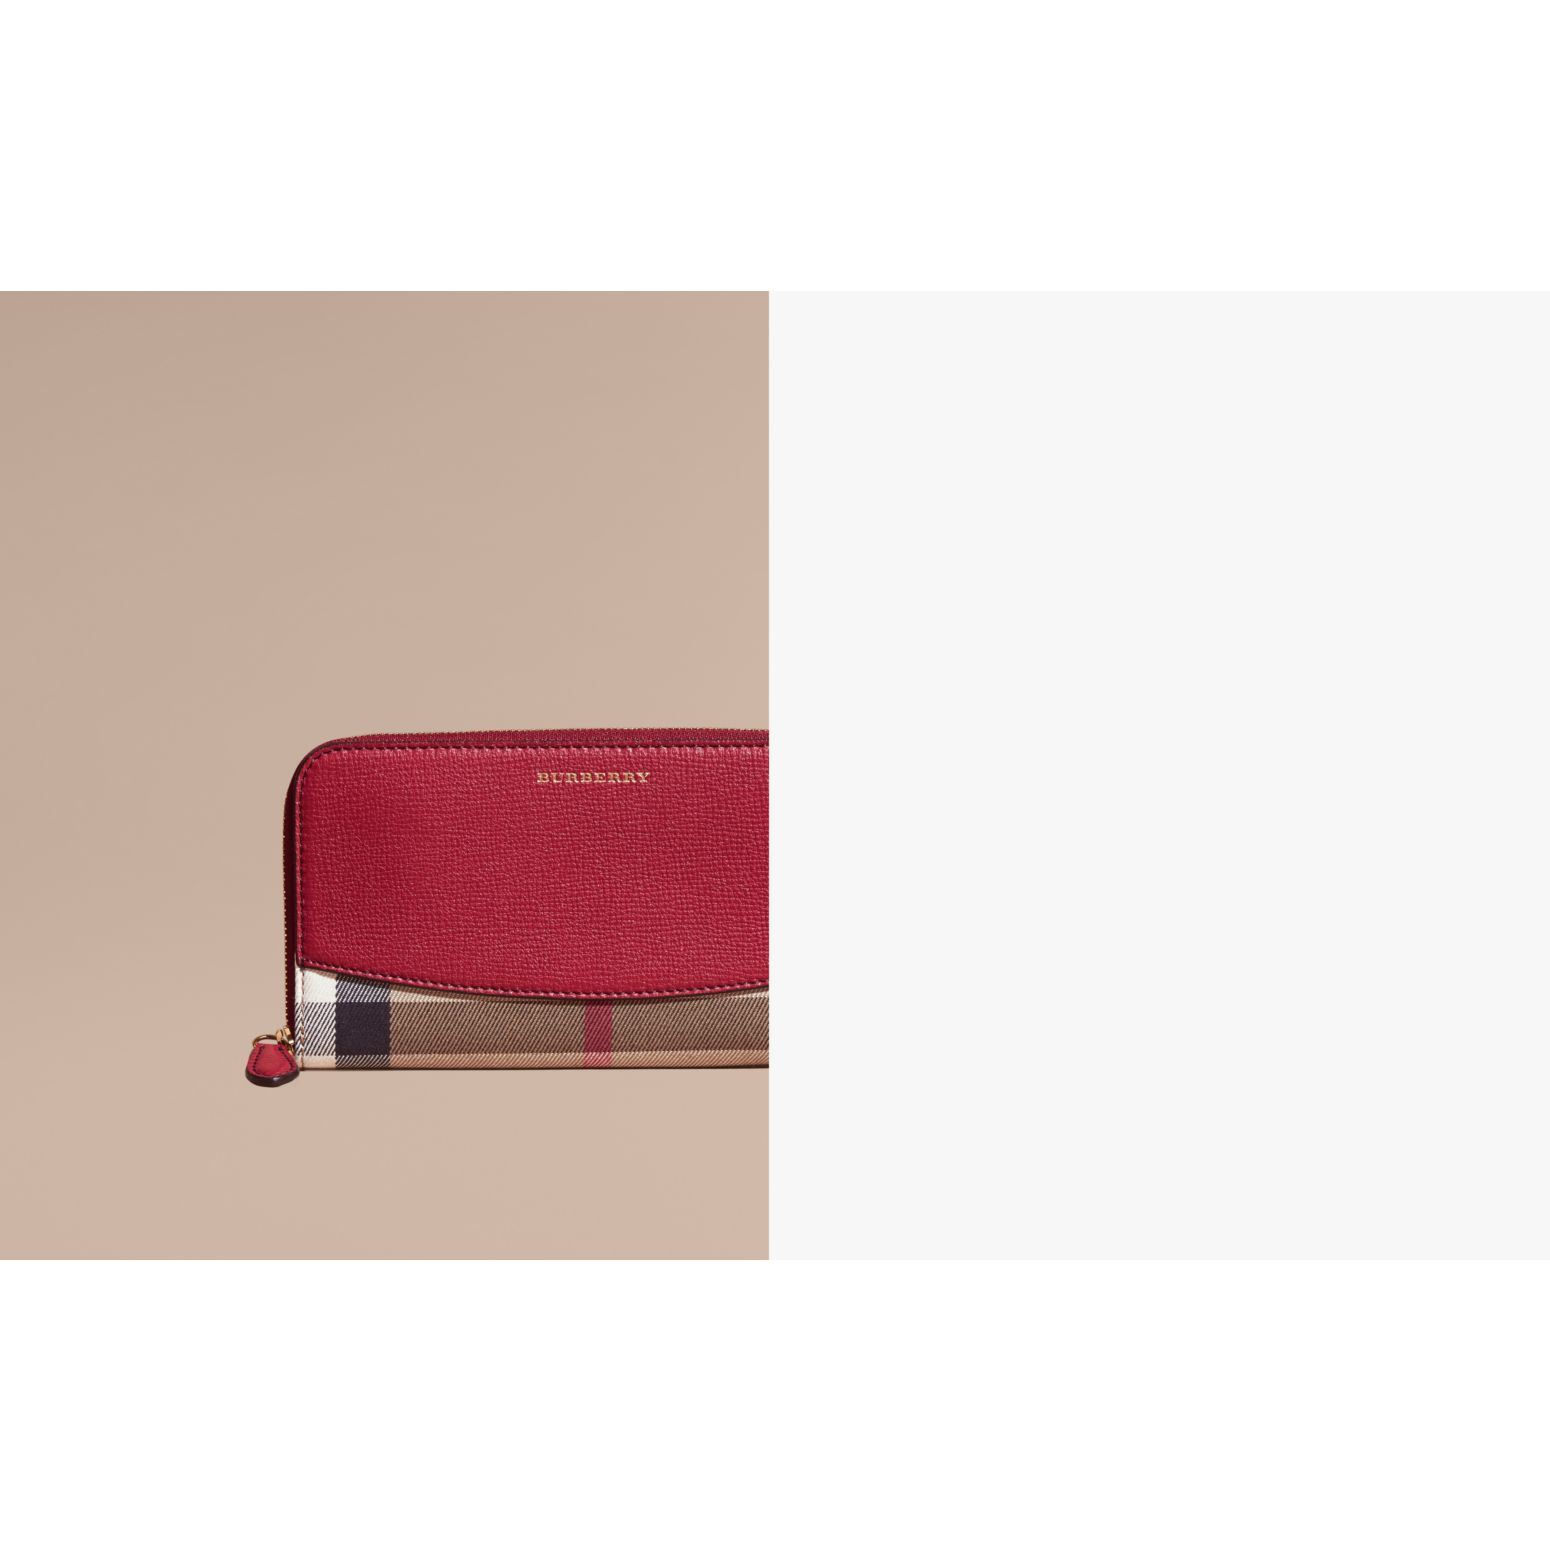 House Check and Leather Ziparound Wallet in Military Red - Women | Burberry United Kingdom - gallery image 2